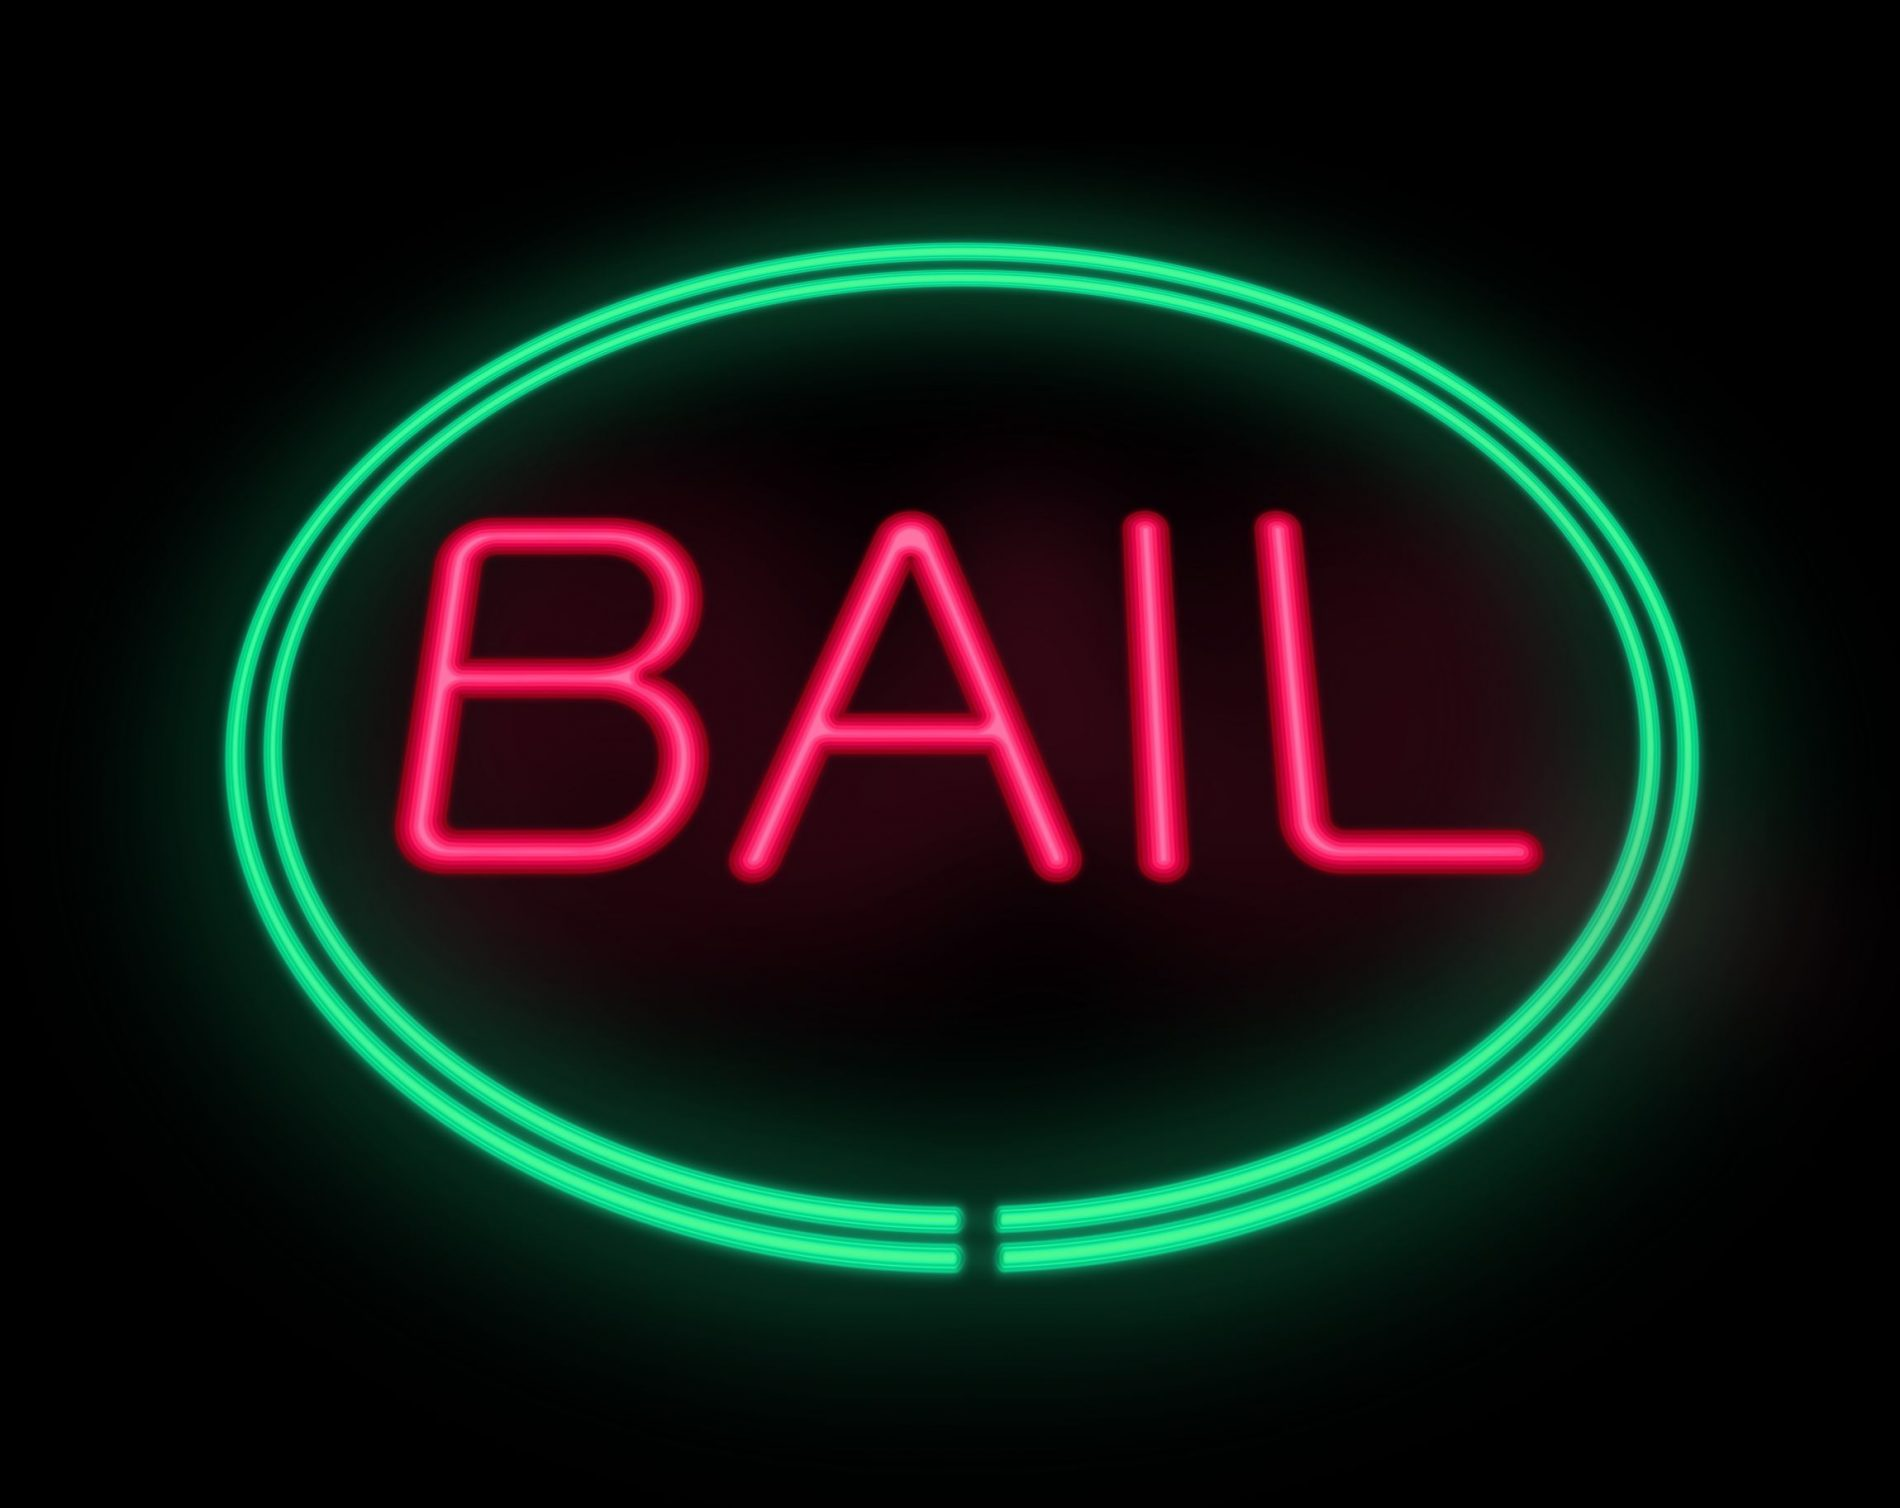 bail bond related terms that you should know